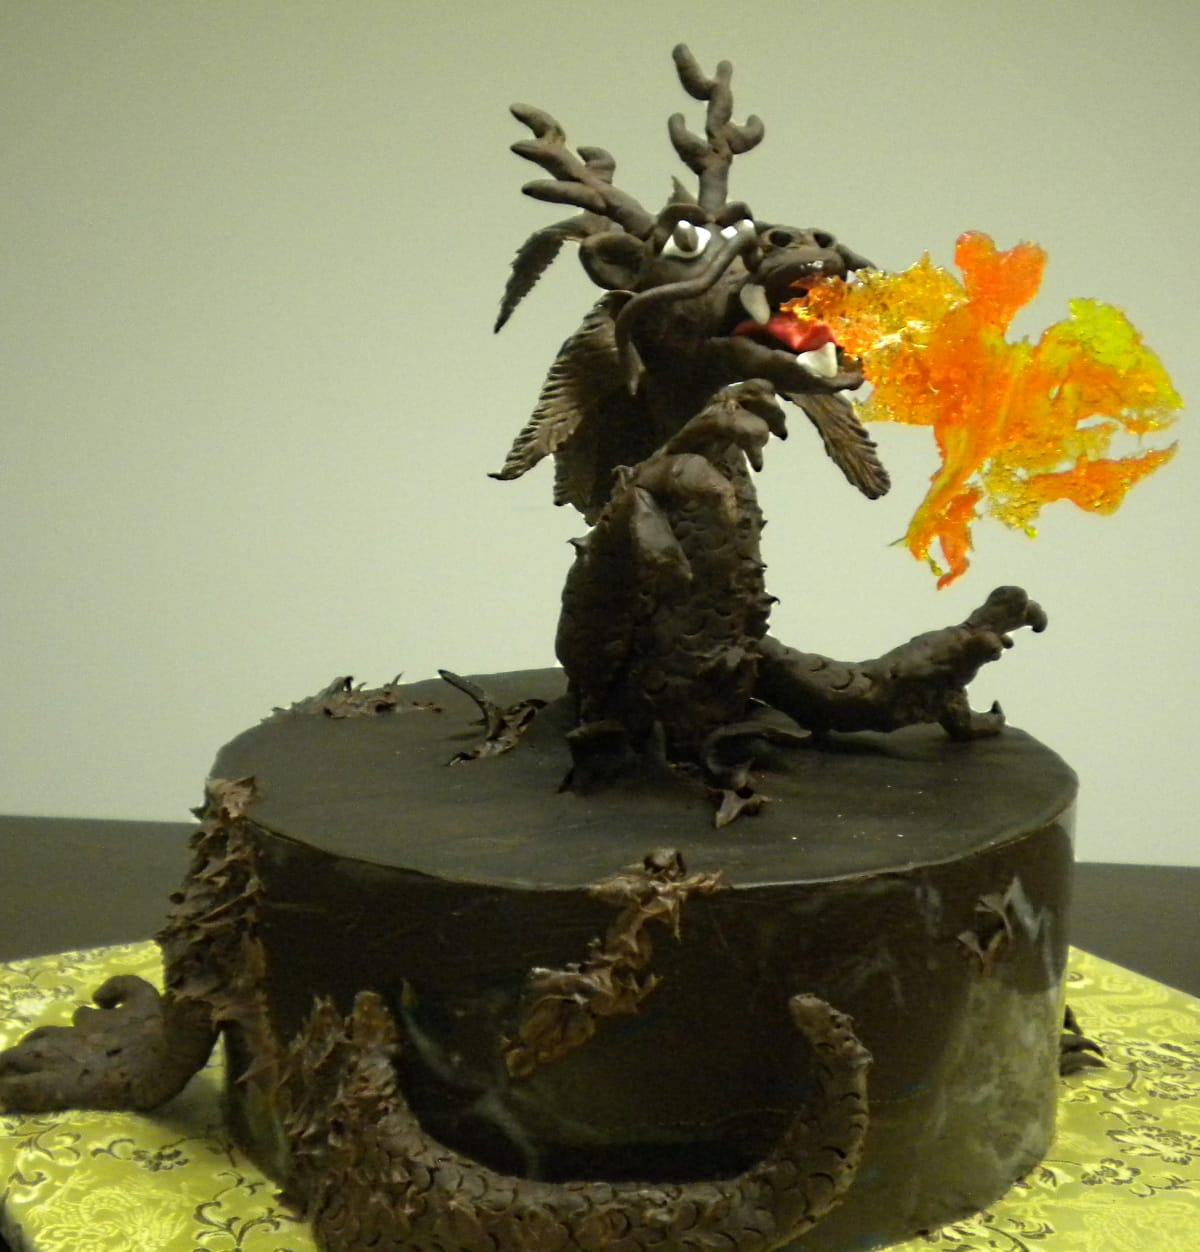 Chocolate Dragon Cake for Taste of Chocolate 2012